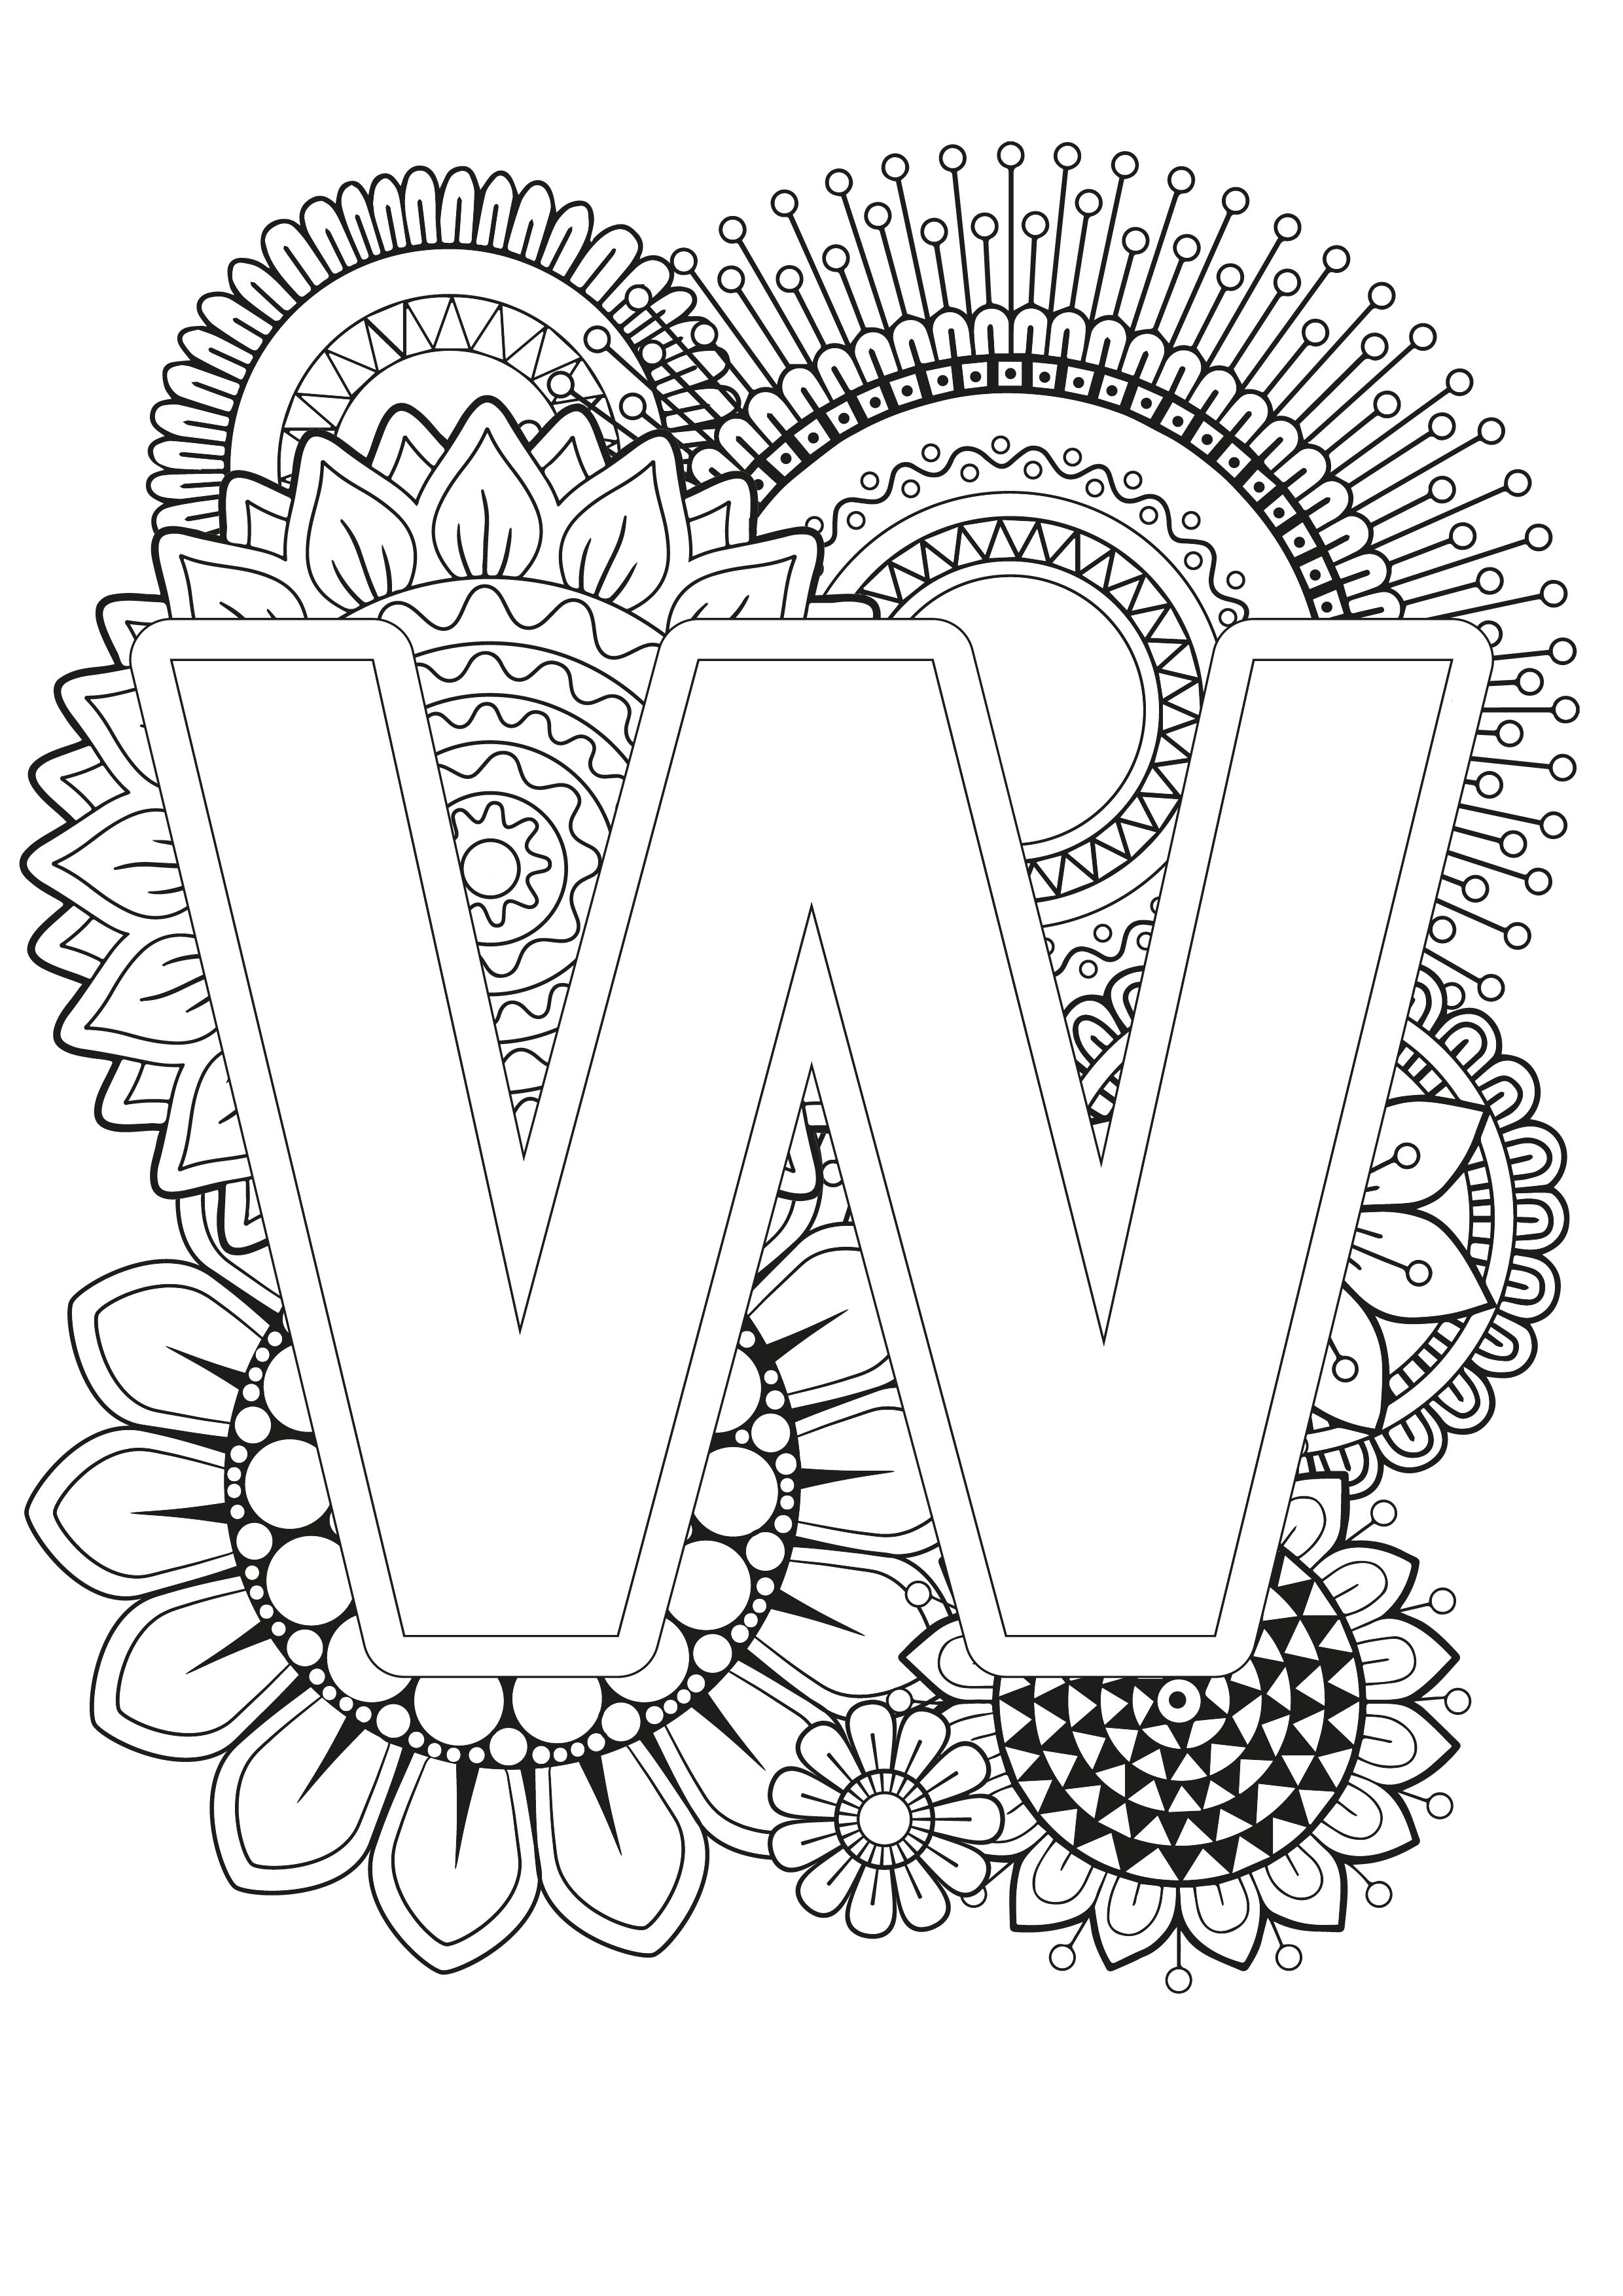 Mindfulness Coloring Page Alphabet Love Coloring Pages Coloring Pages Cool Coloring Pages [ 3508 x 2480 Pixel ]